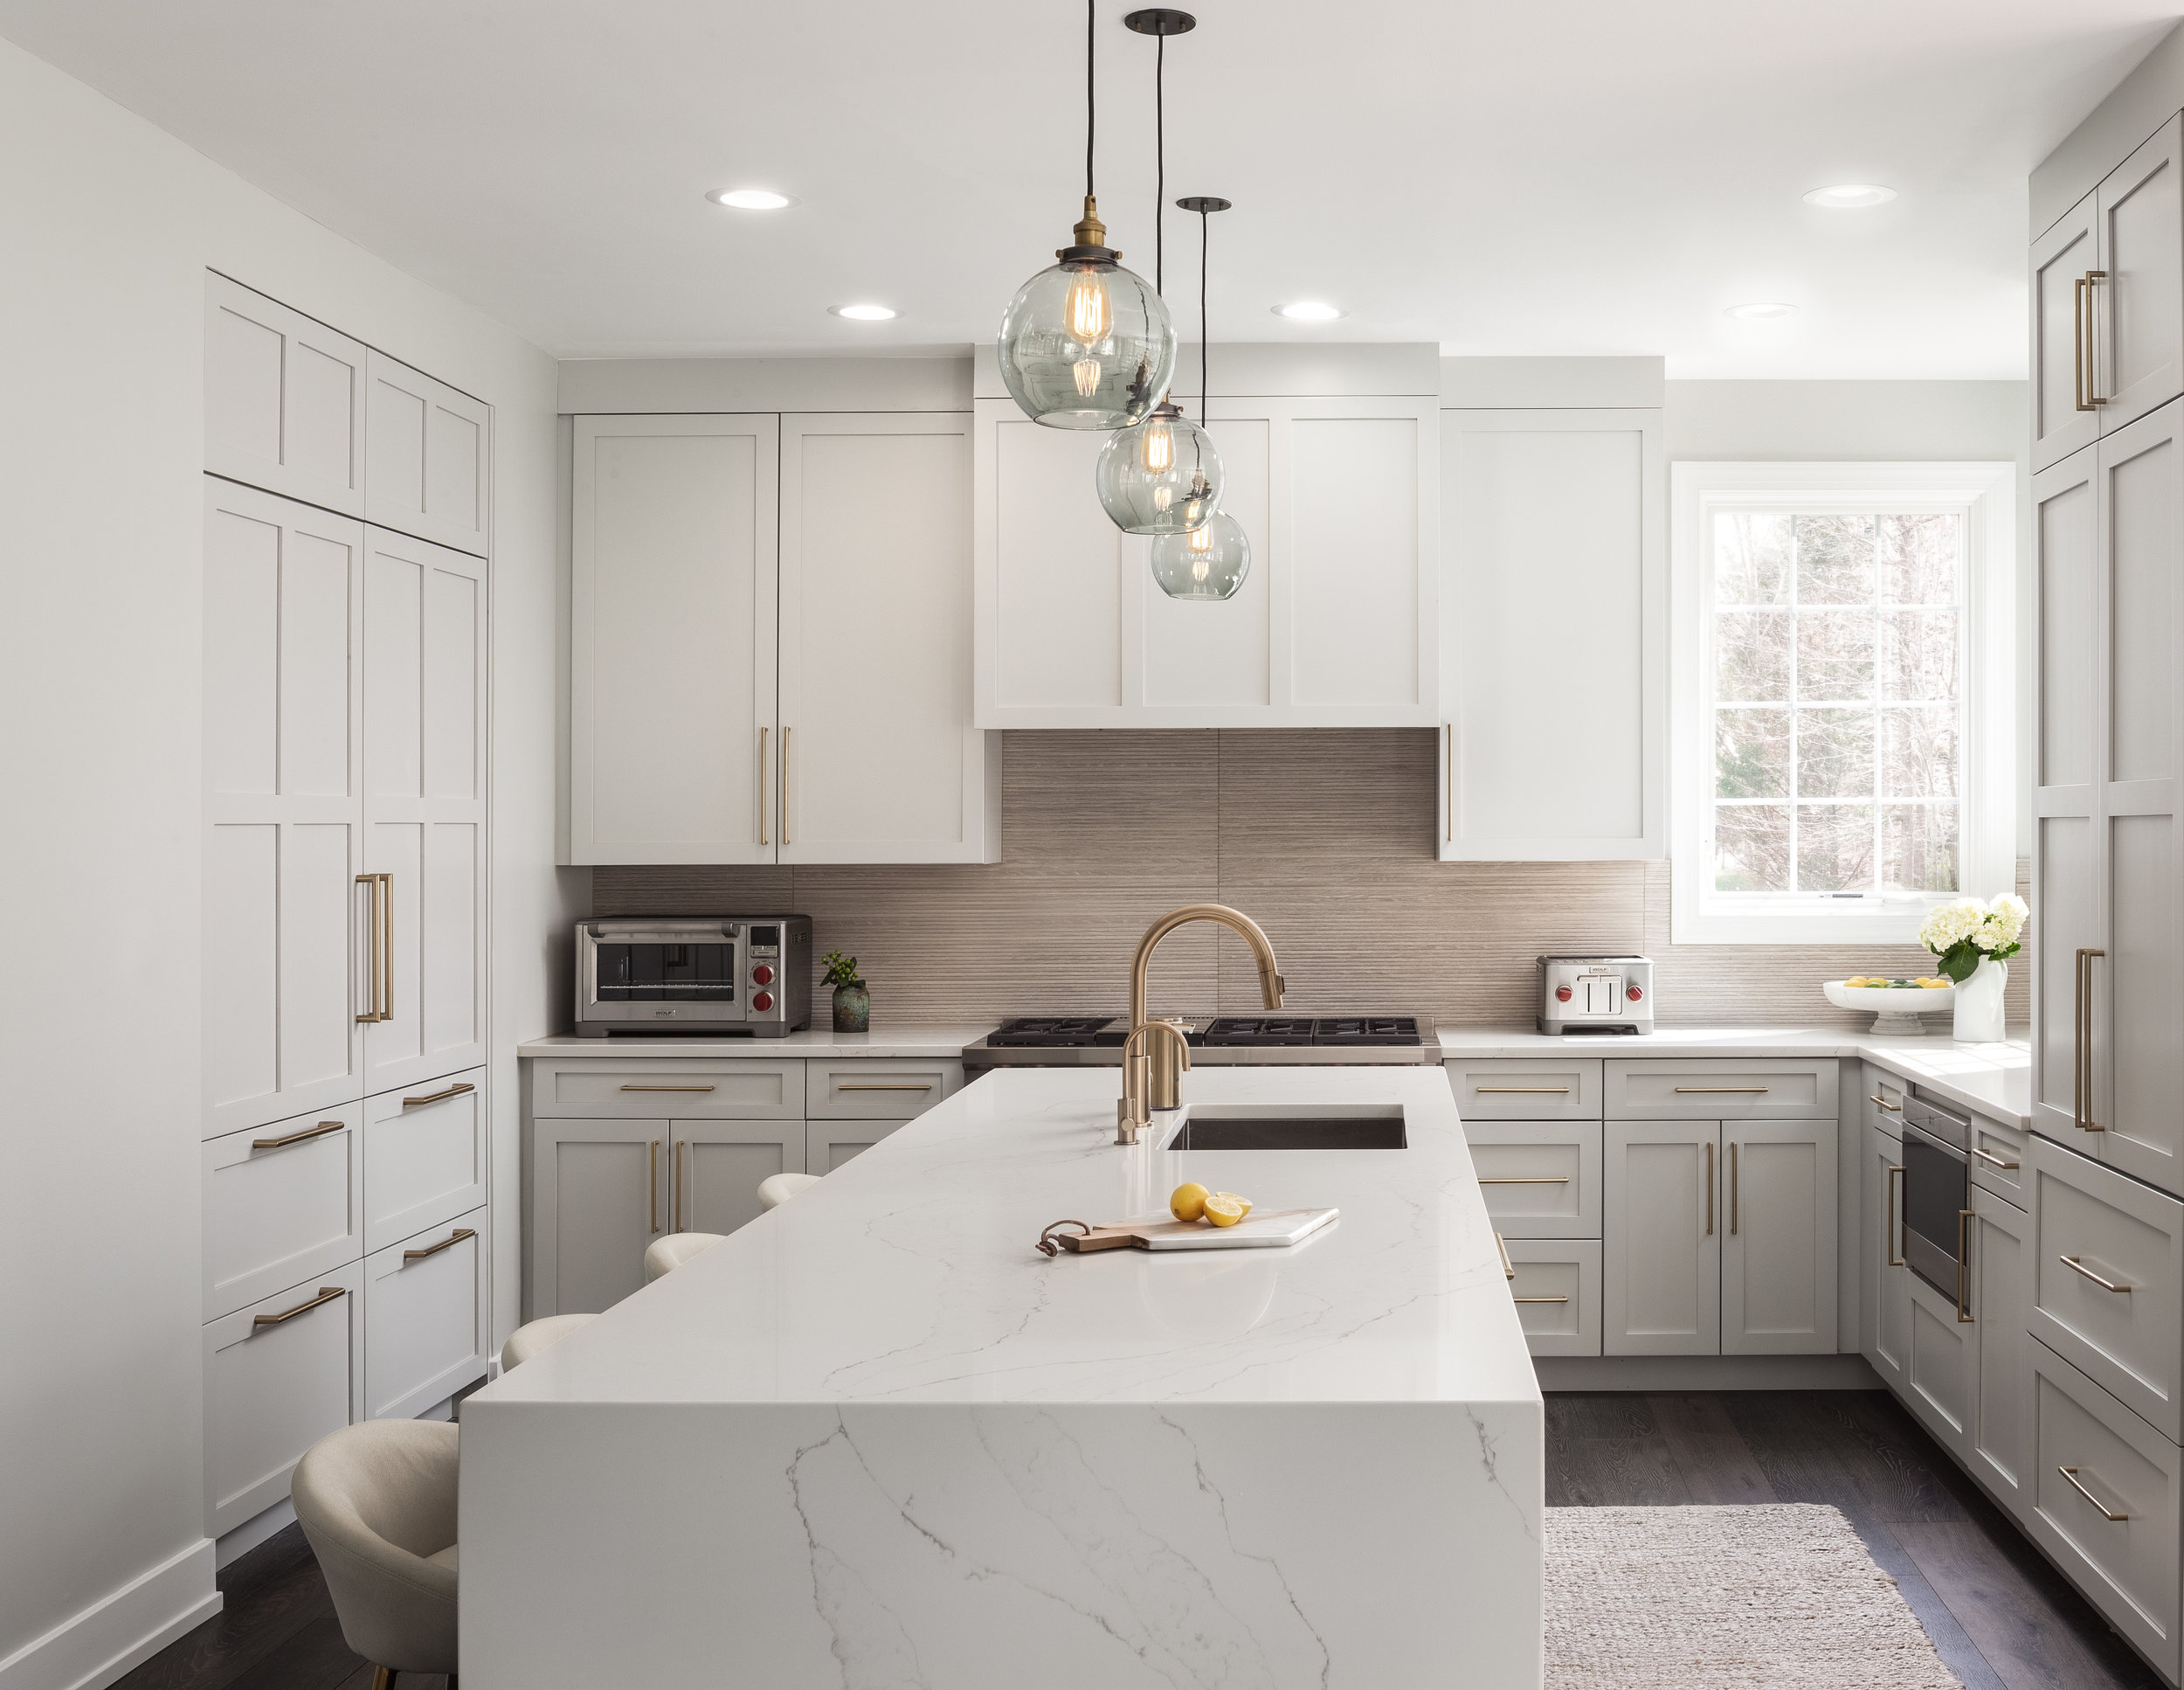 The new kitchen is bright, inviting and warm, truly representing the heart of the home.